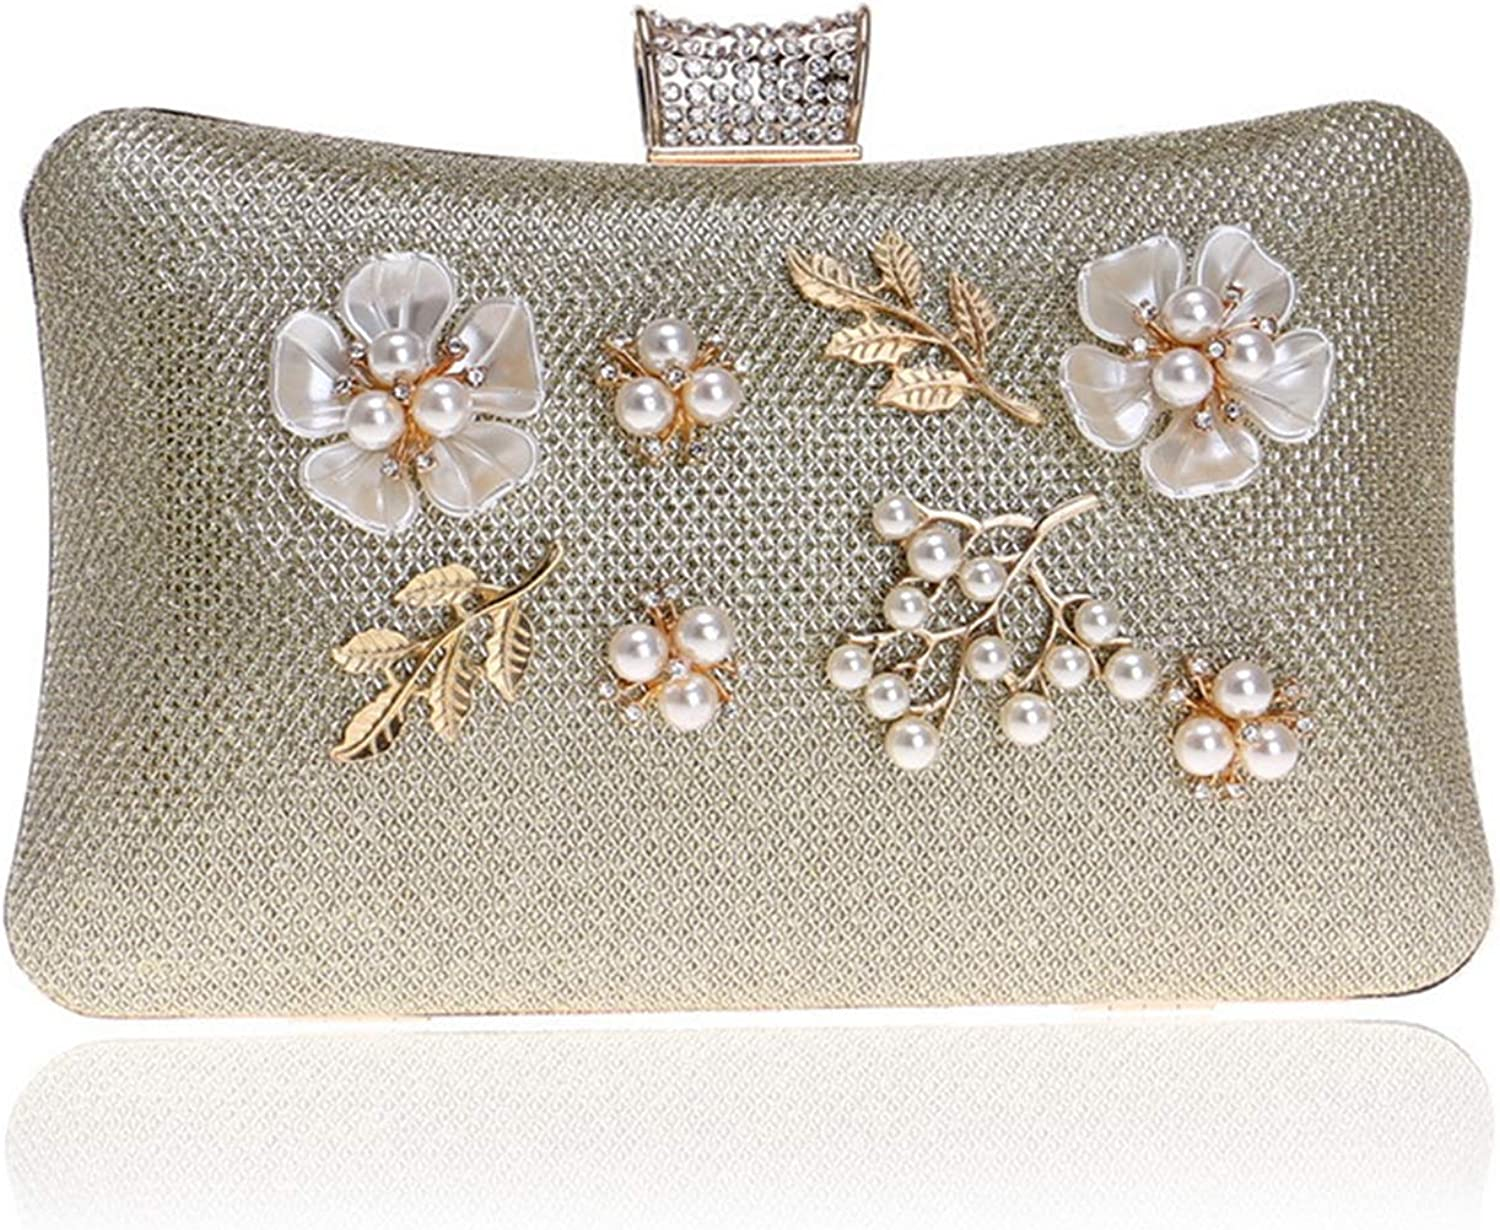 Clutch Handbag Dinner Beading Flowers at Night Crossbody Bag Wedding Party Prom Wallet Silver Shoulder Bags Pearl Rhinestone Women's gold Pocket (20×6×12cm)